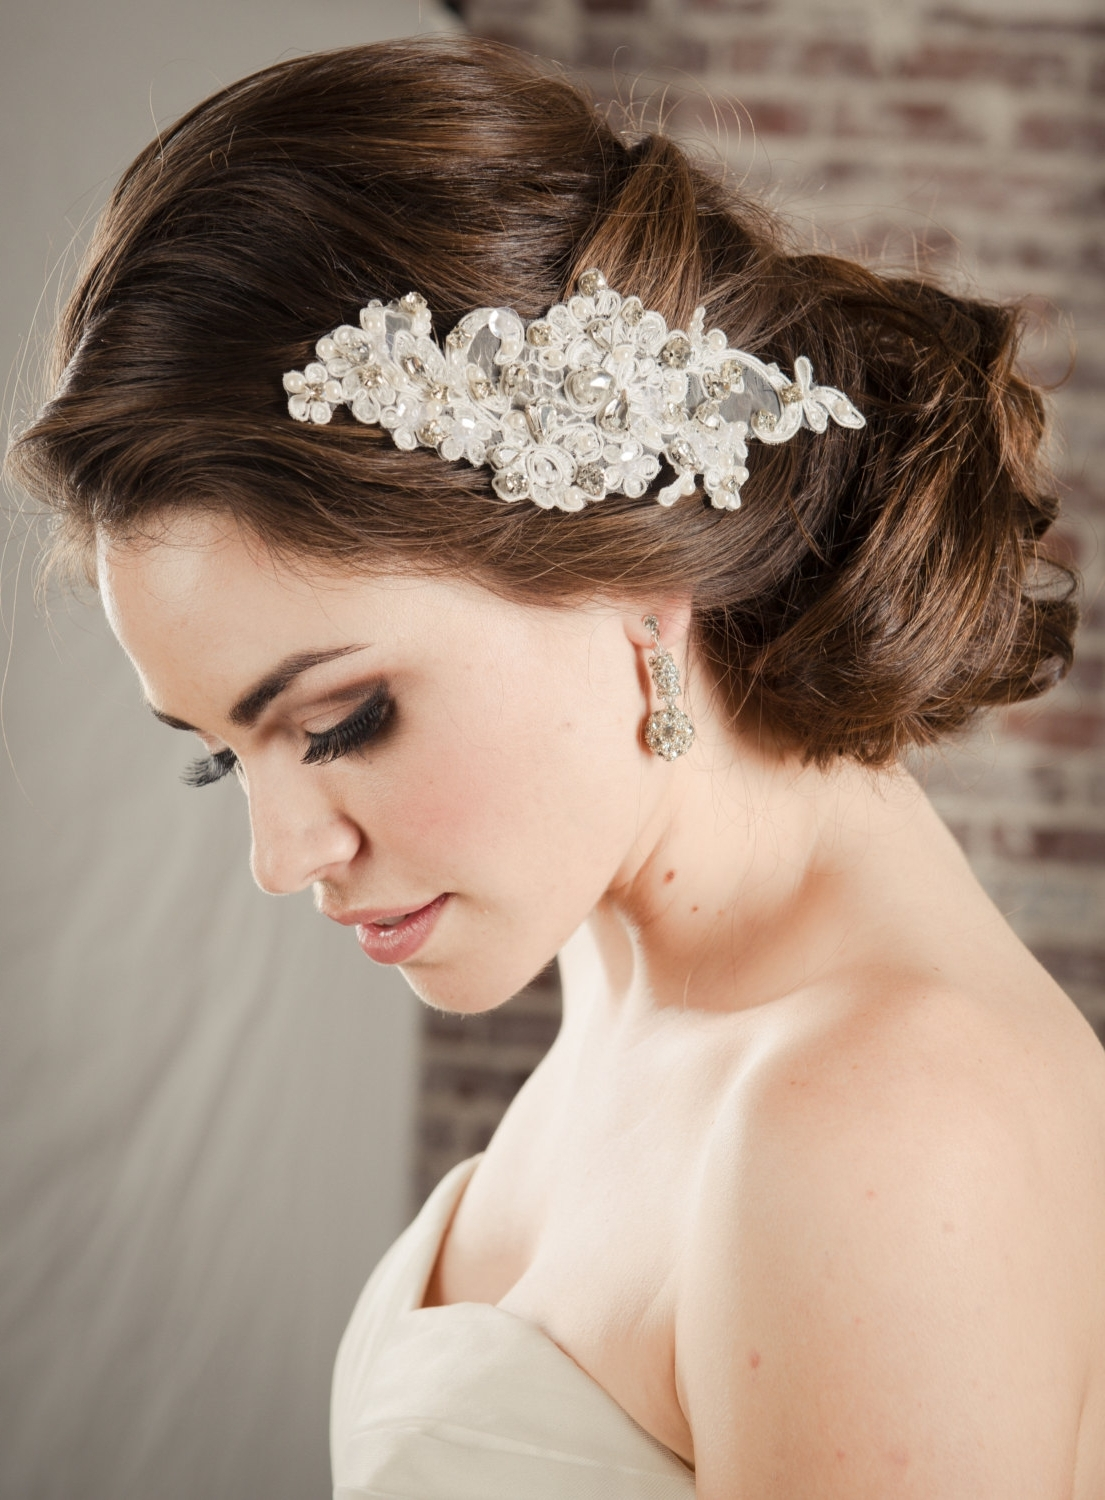 Hair Accessories Bridal Lace Comb, Pearl & Rhinestone Swarovski Intended For Most Popular Wedding Hairstyles With Accessories (View 6 of 15)